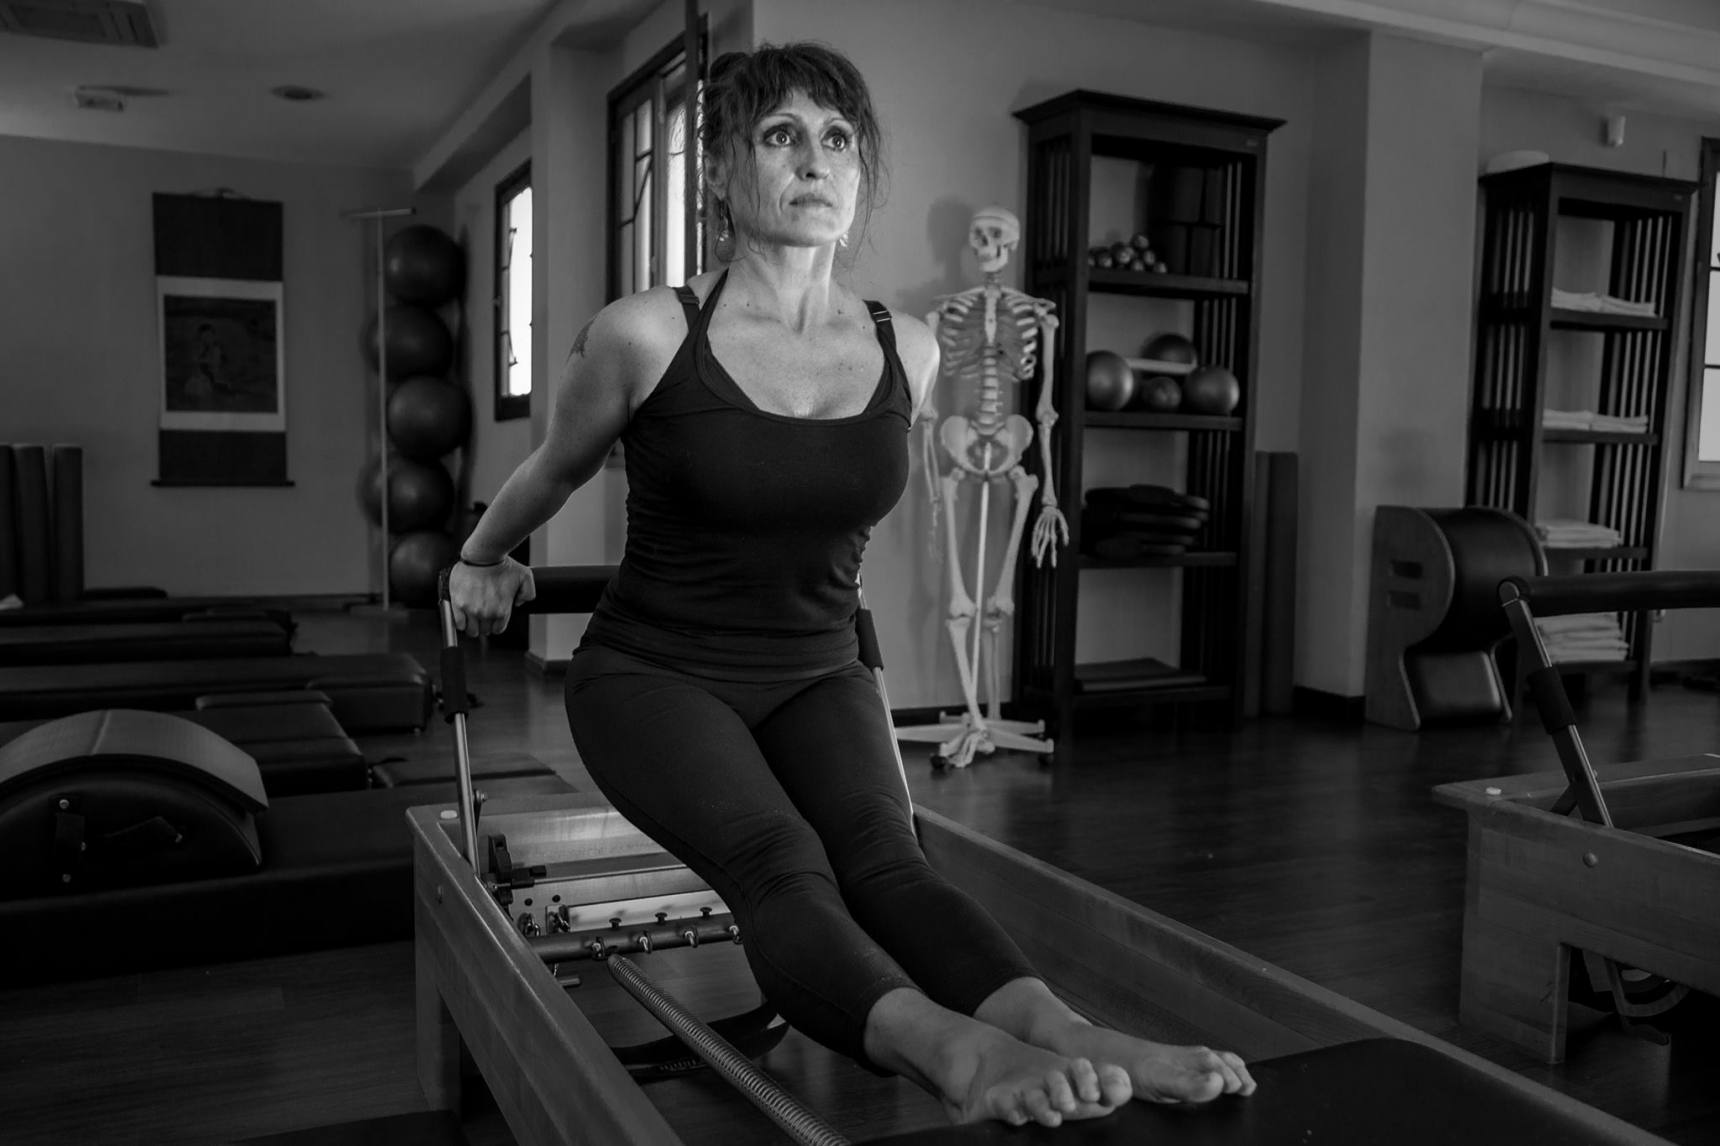 ¿Qué ofrece Pilates Training Center franquicias?.